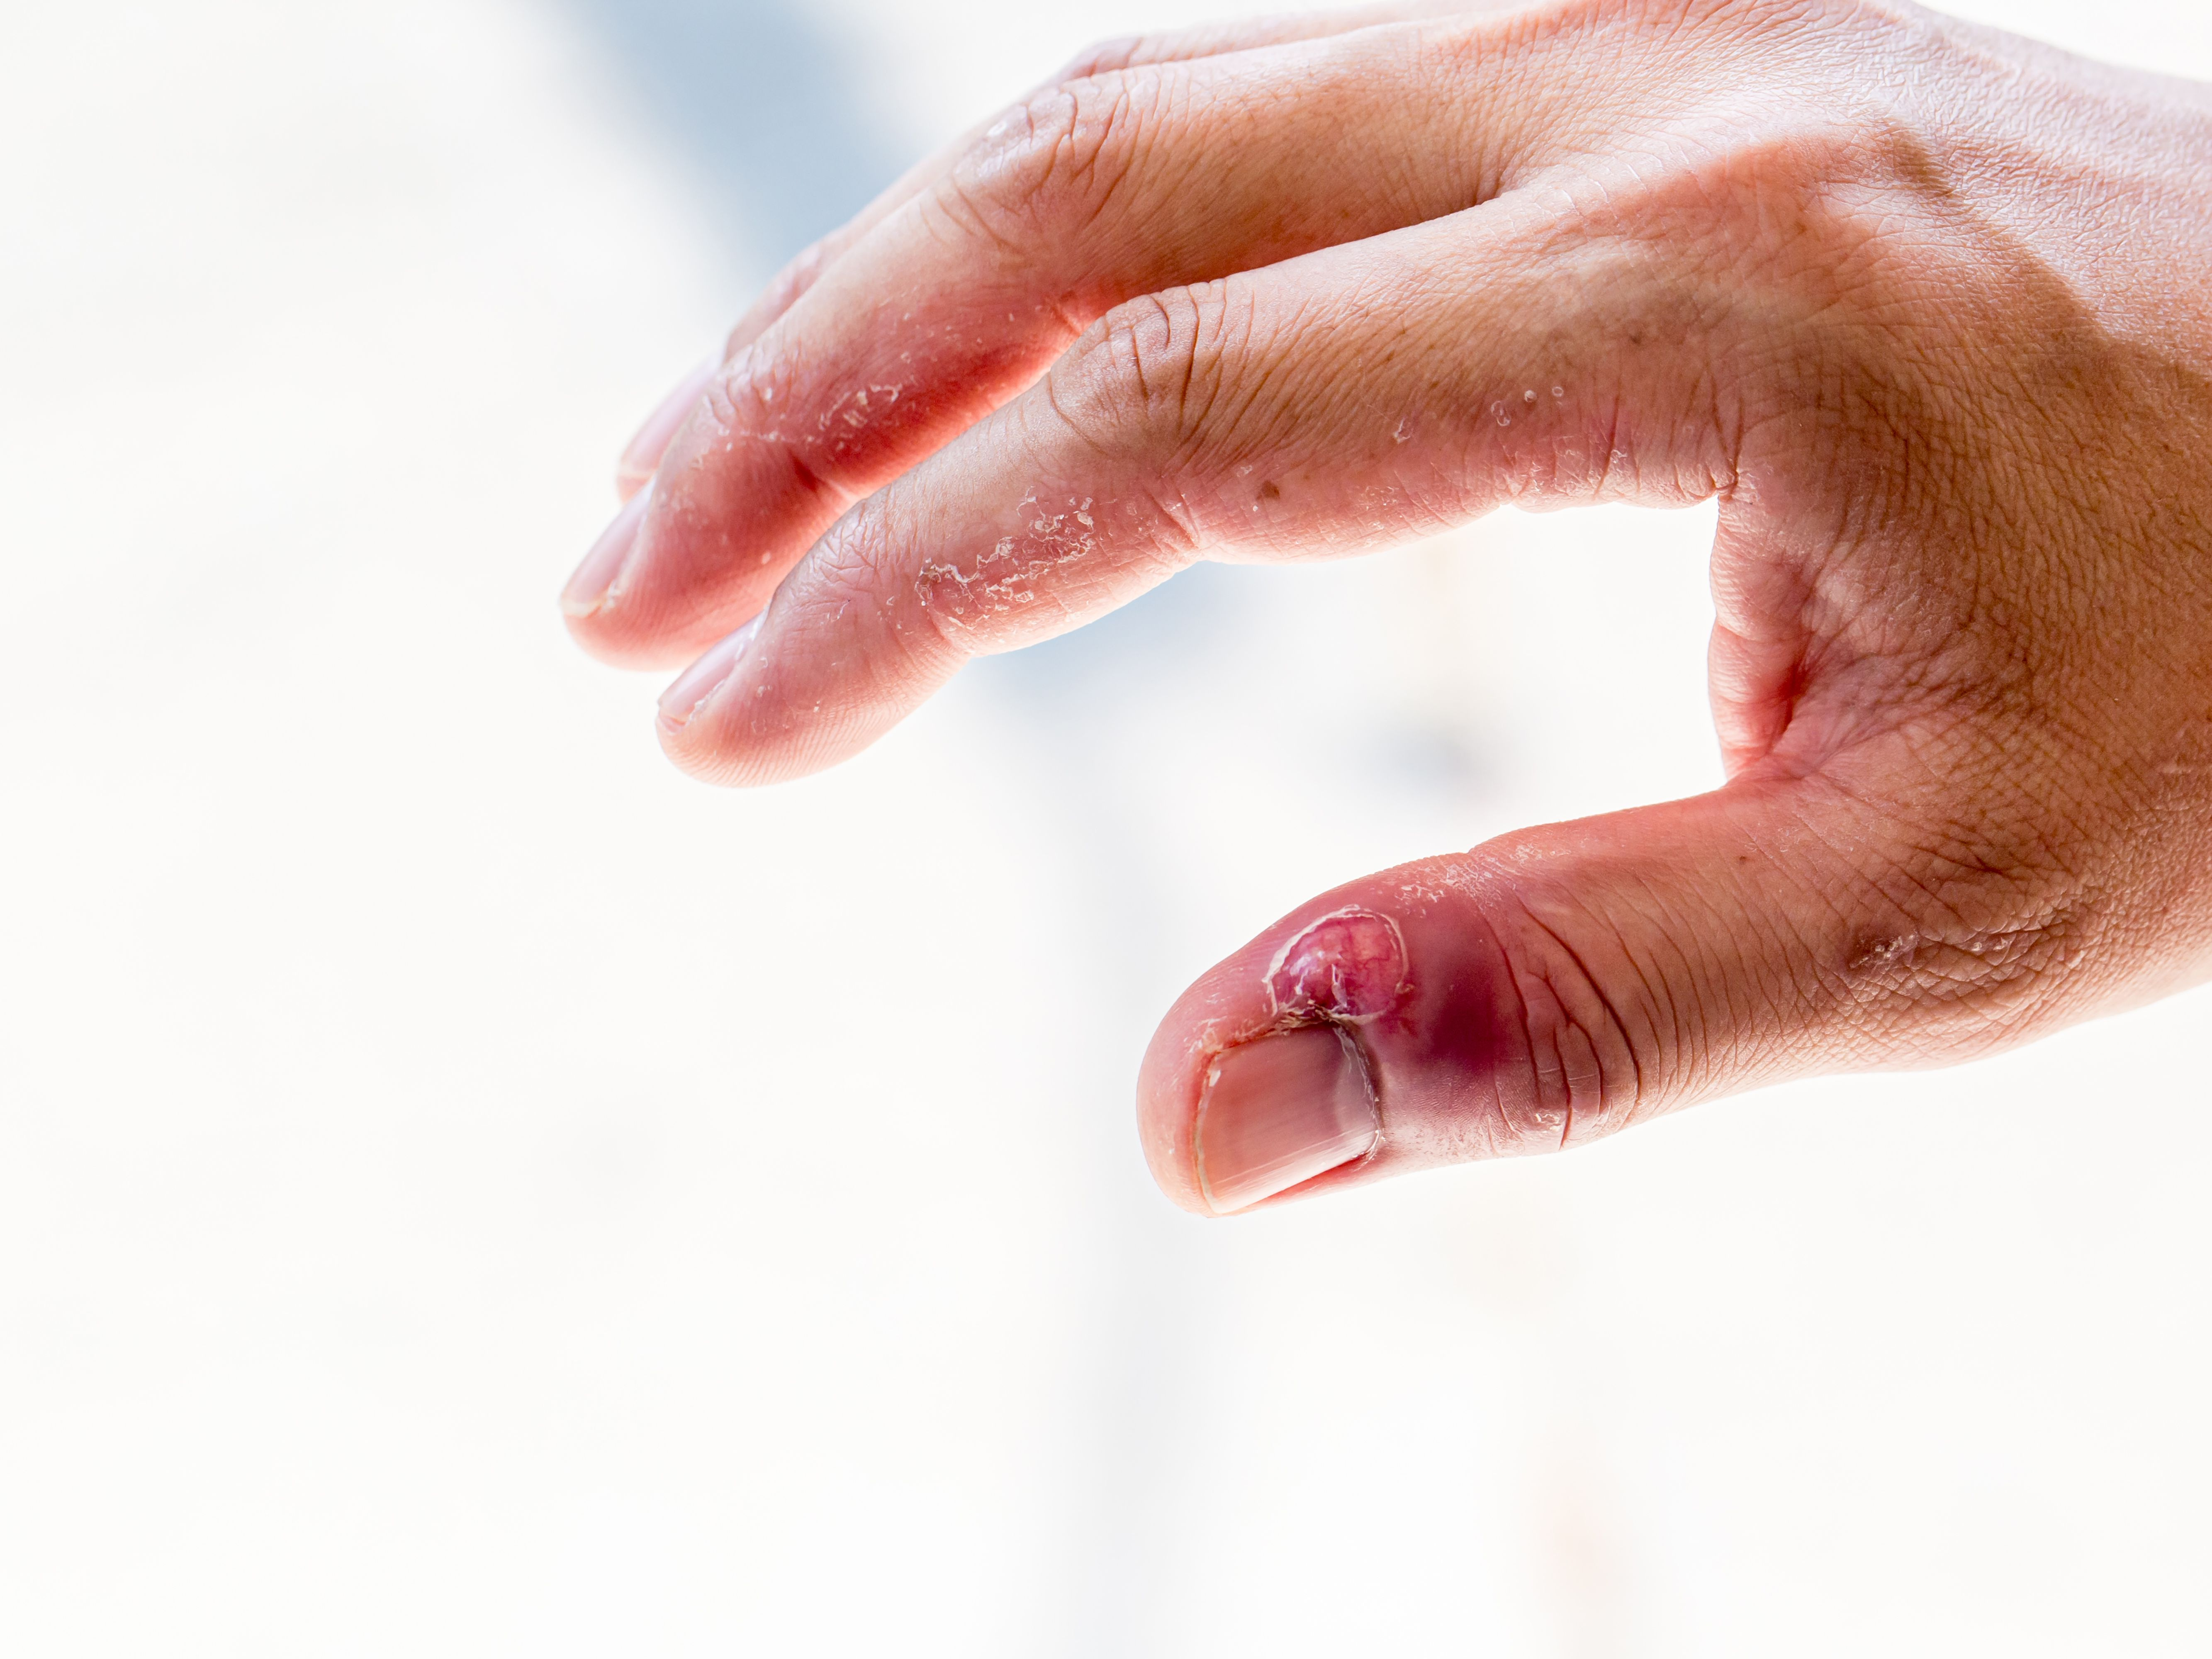 Skin Infection Around Fingernails and Toenails